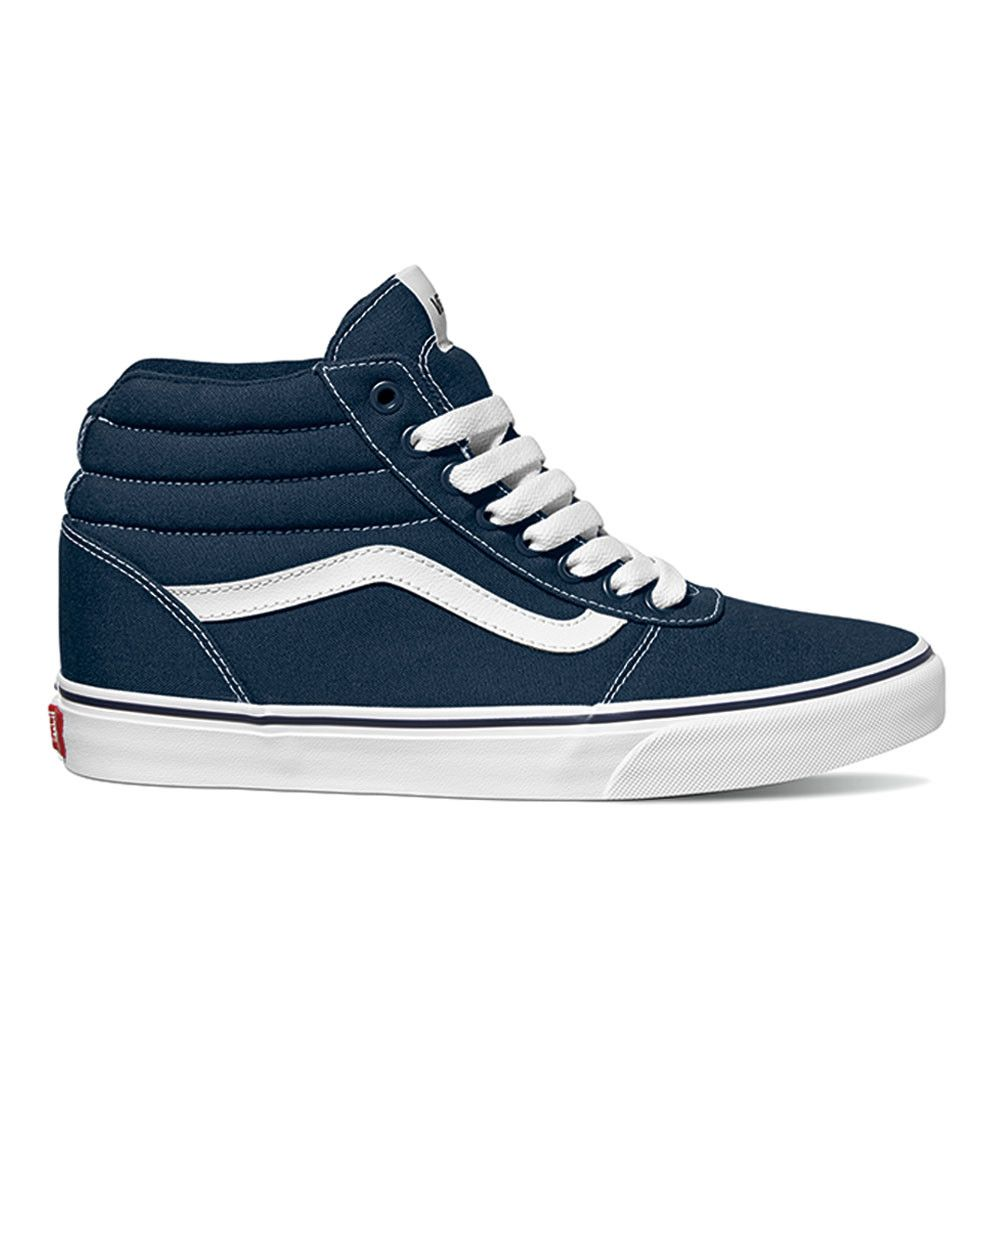 Vans Ward Hi (dress blue white). Available in size 13-15.  size13  size14   size15  bigfeet  bigshoes  bigtrainers  vans  footwear  tall  tallmen   ... 39646e265